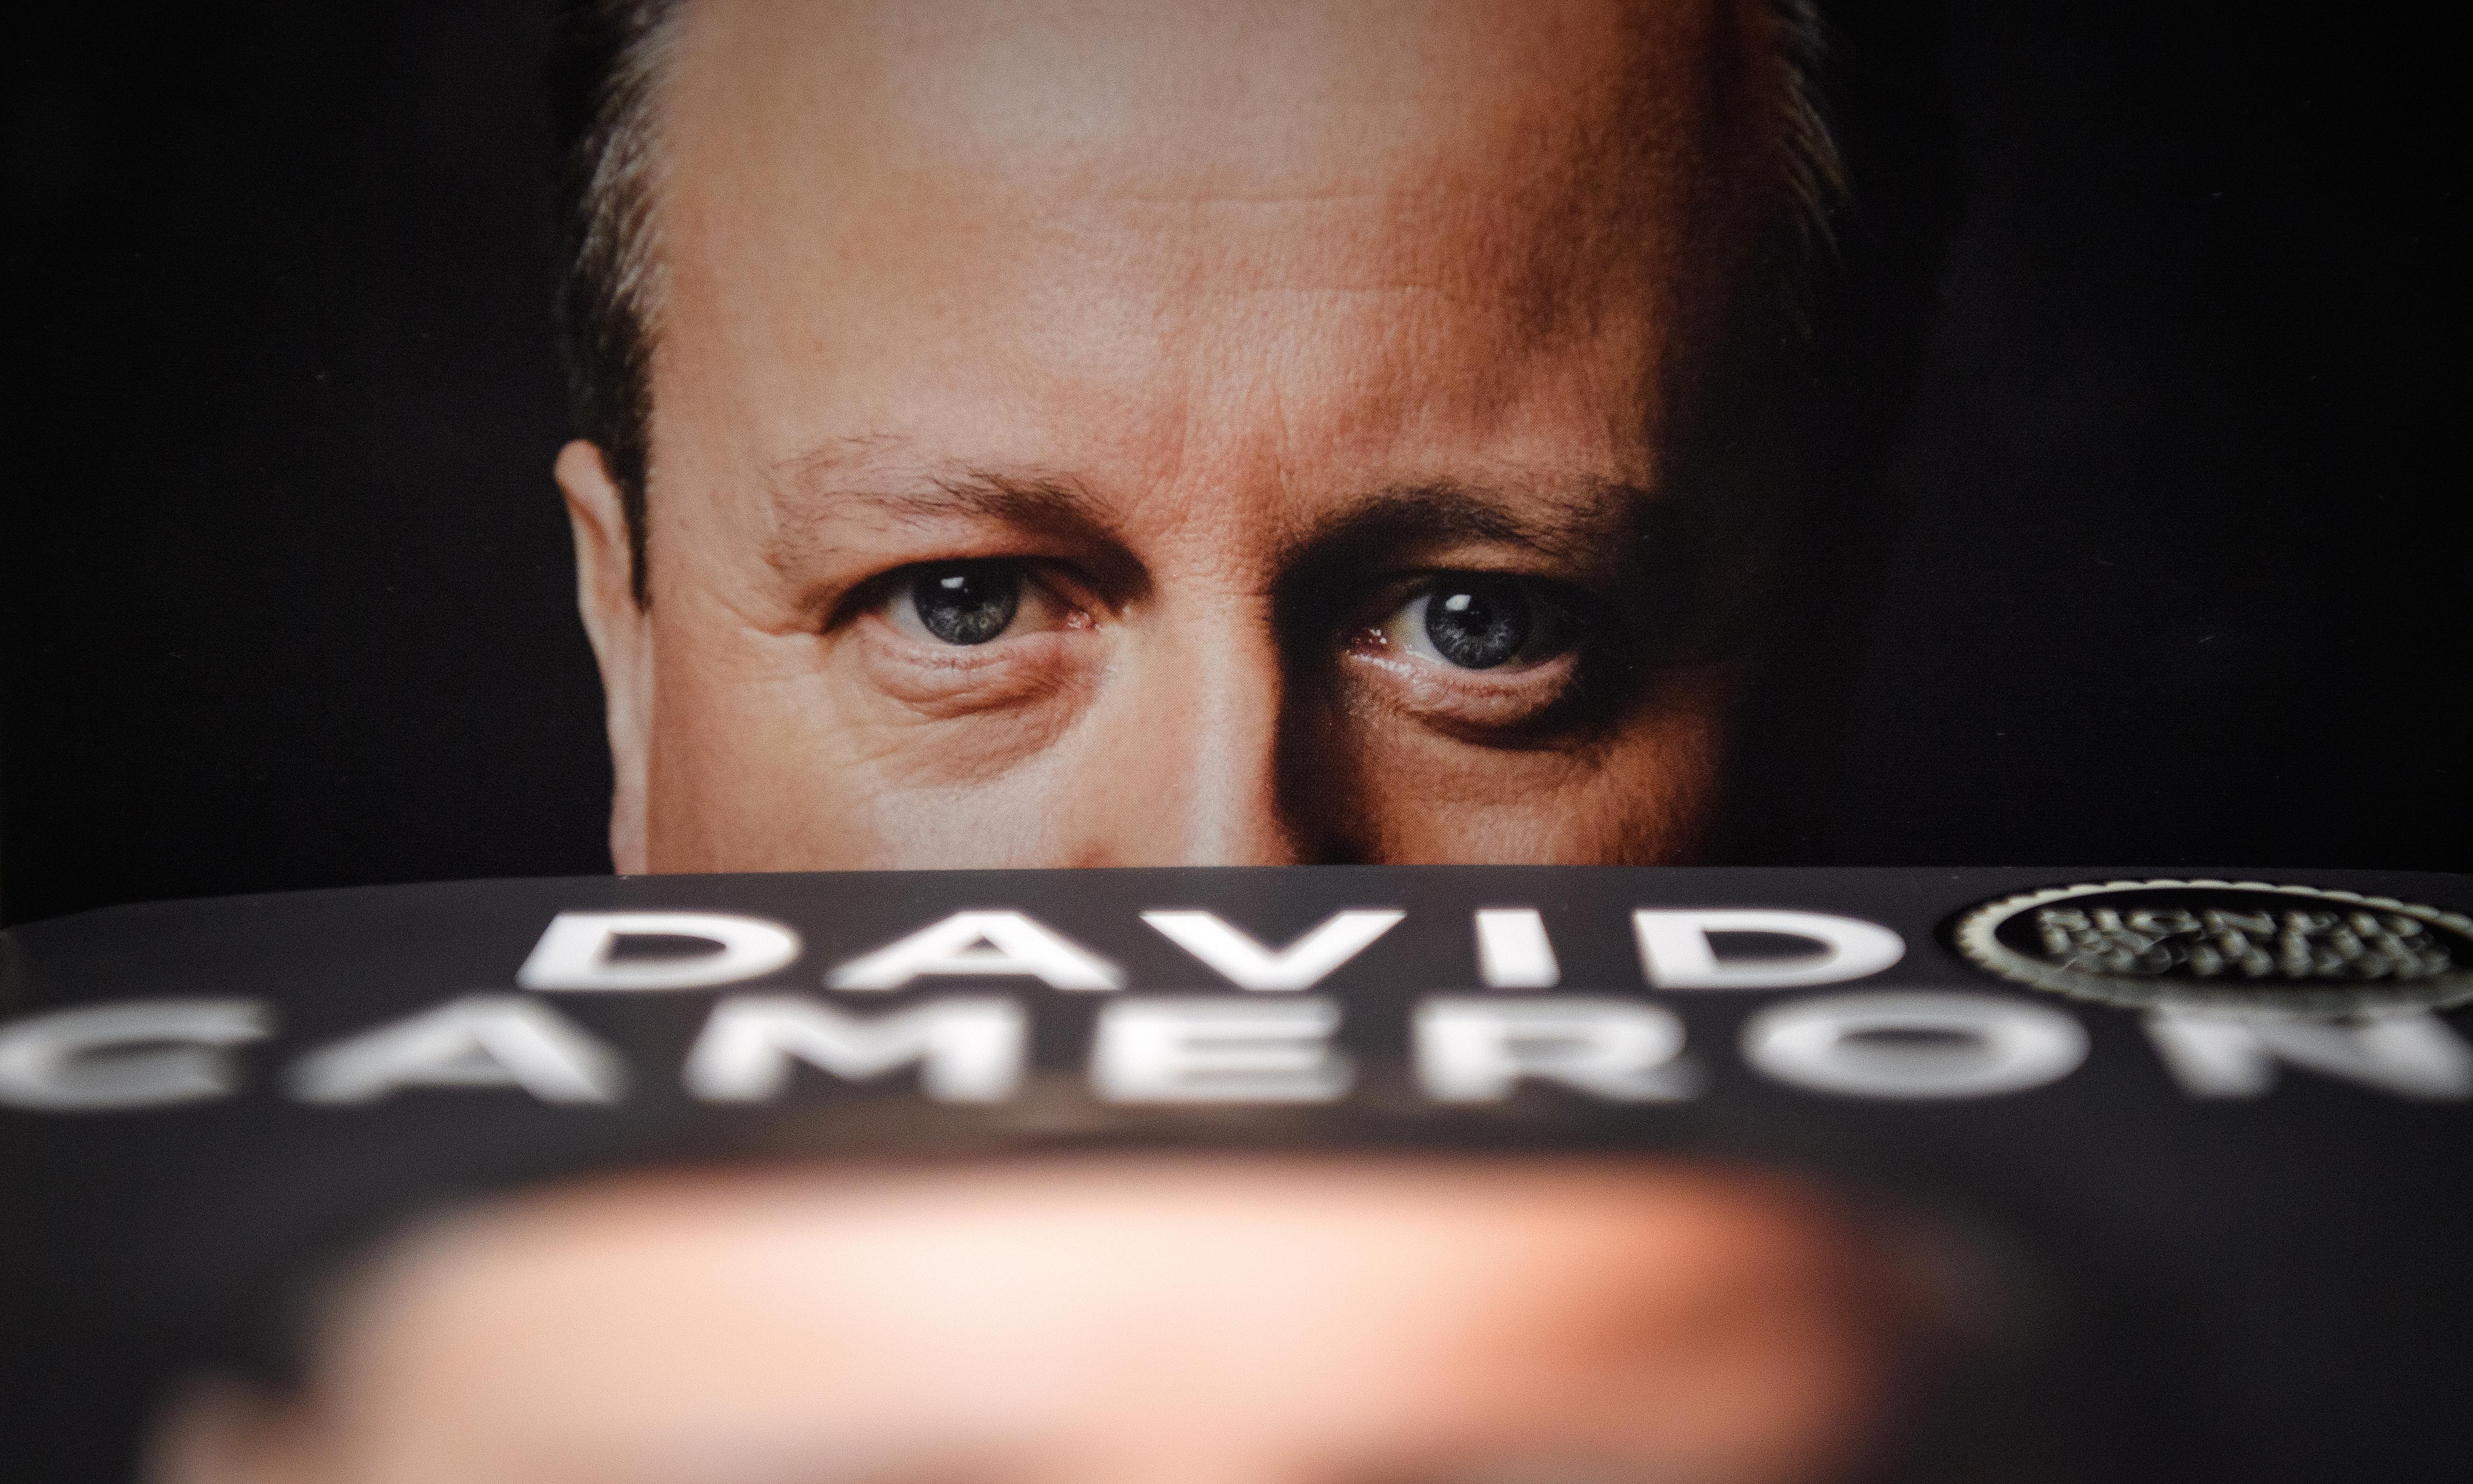 For the Record: David Cameron's memoir is honest but still wrong